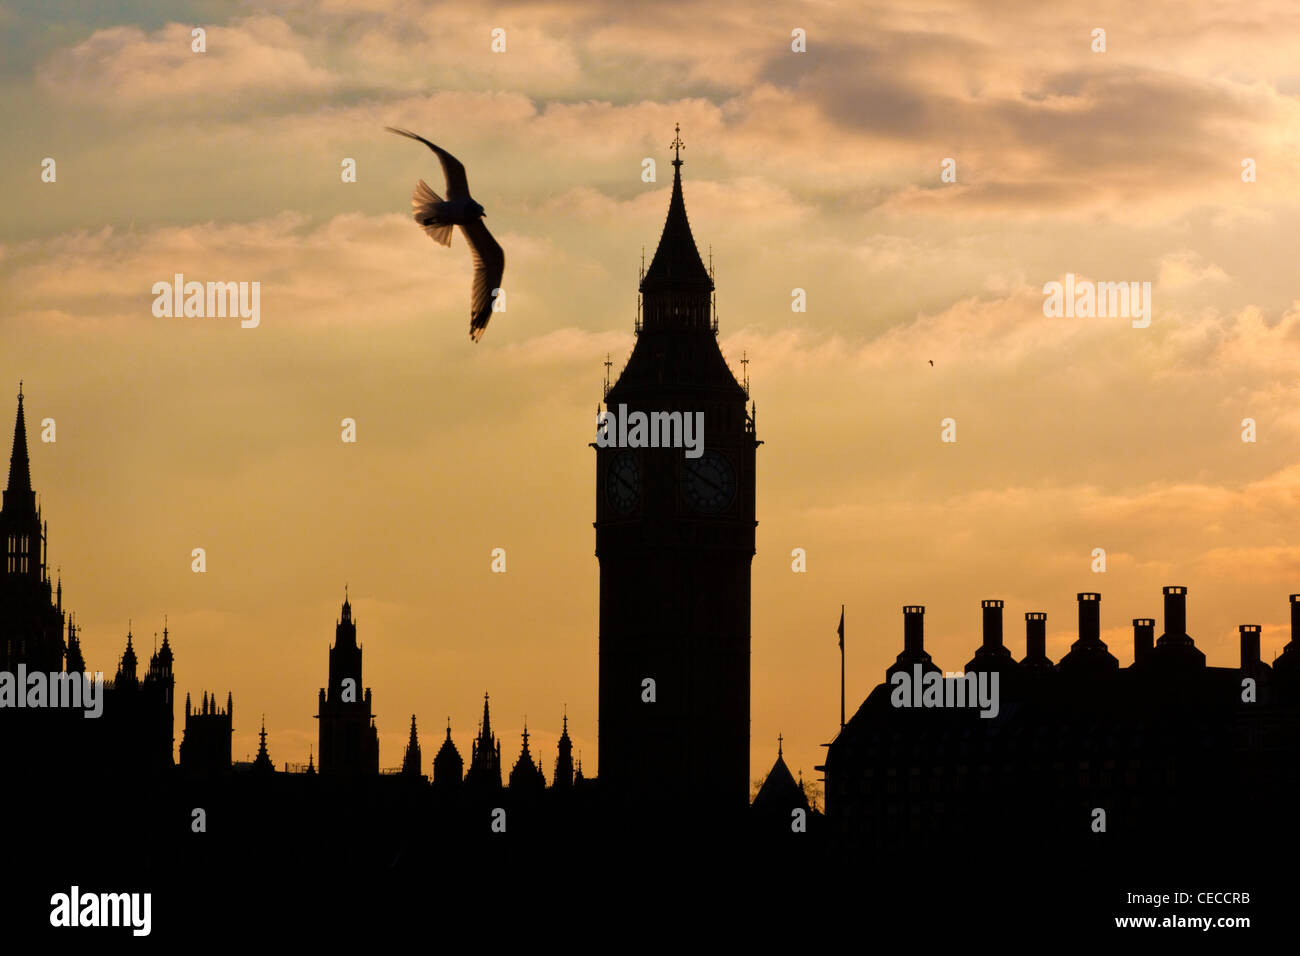 Houses of Parliament, Big Ben clock tower and Portcullis House, Westminster, Central London silhouetted at dusk. - Stock Image